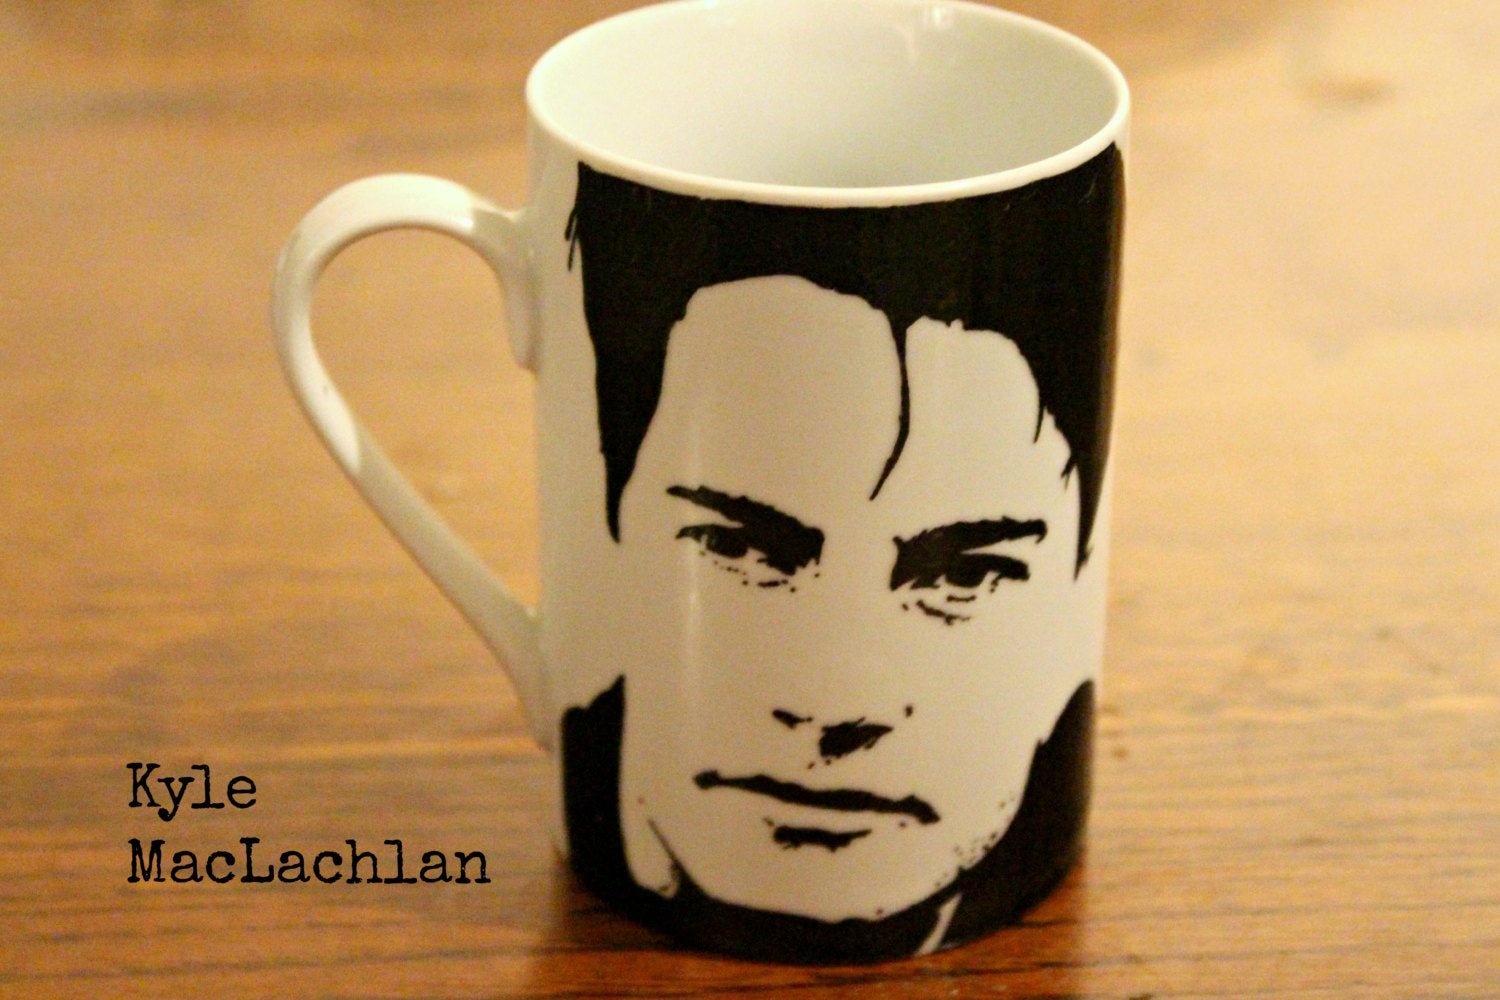 Kyle MacLachlan - Twin Peaks - Hand Printed Cup - ByCandlelight27